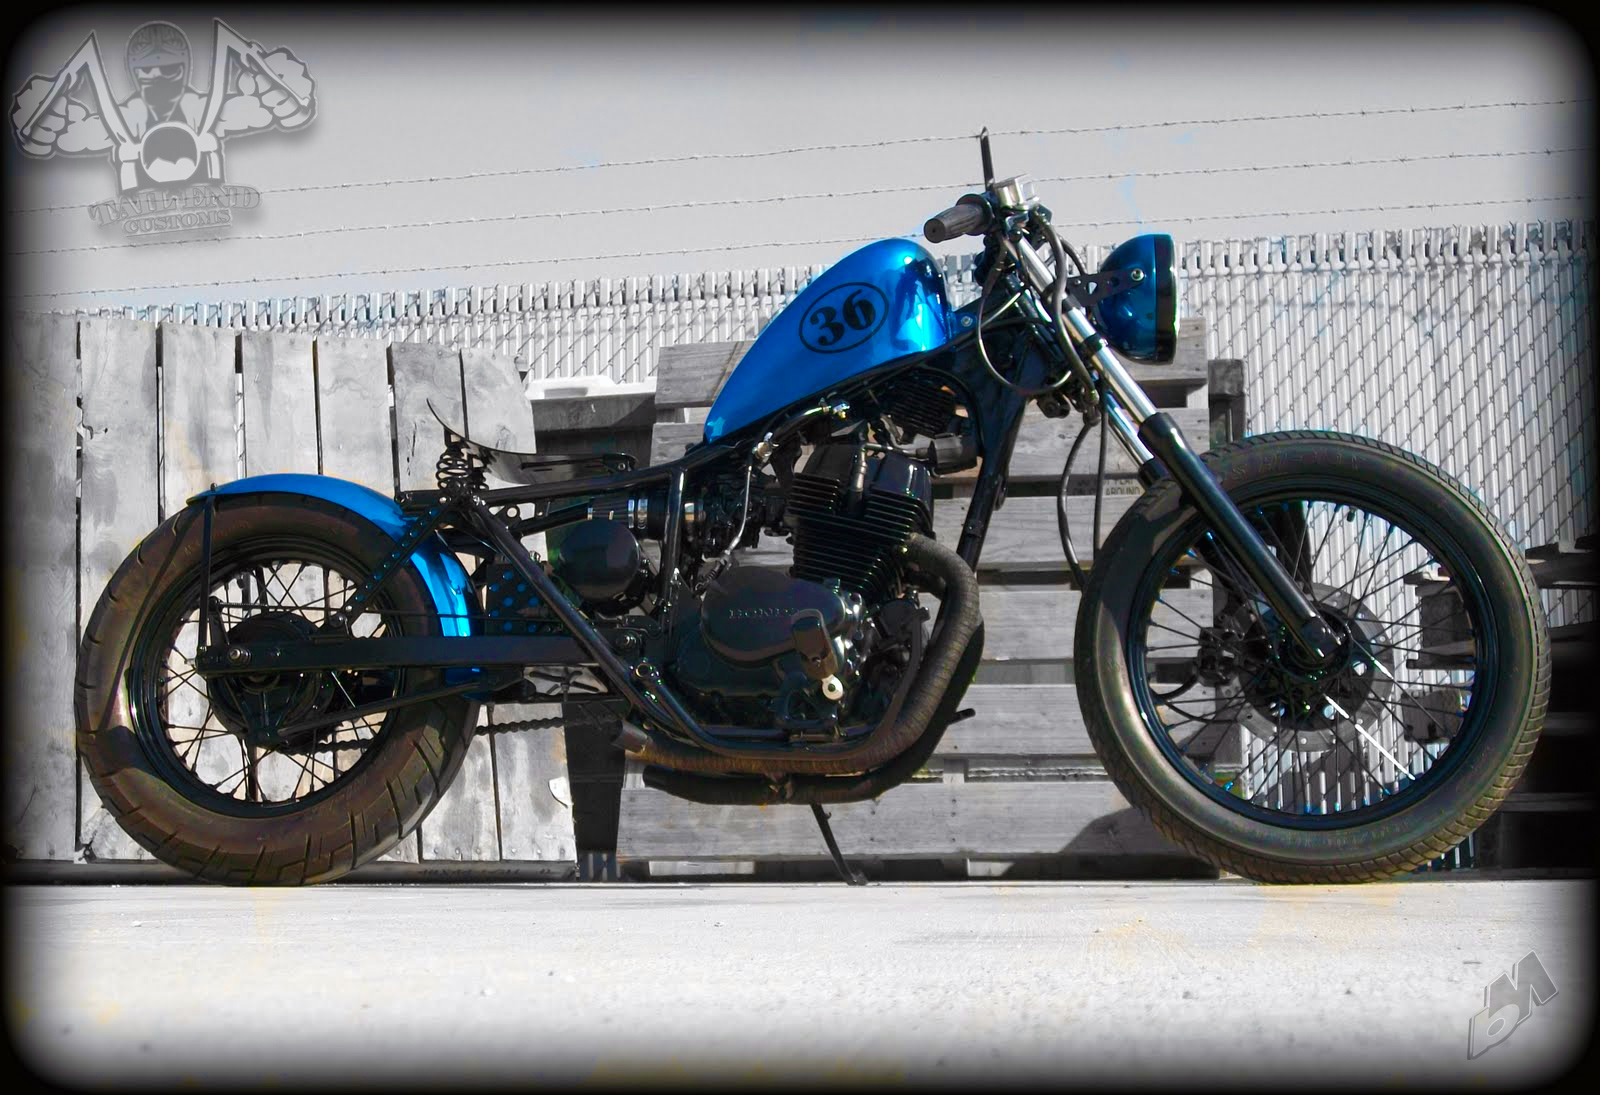 bobbers 650 vs 1100 with Tail End Customs Brake Lightplate on 2zfbcyc2ong likewise Bobber Motorcycle Mods furthermore Vbpicgallery furthermore CKa4aW0CsVE as well Honda Shadow 600 Custom Vlx Chopper.